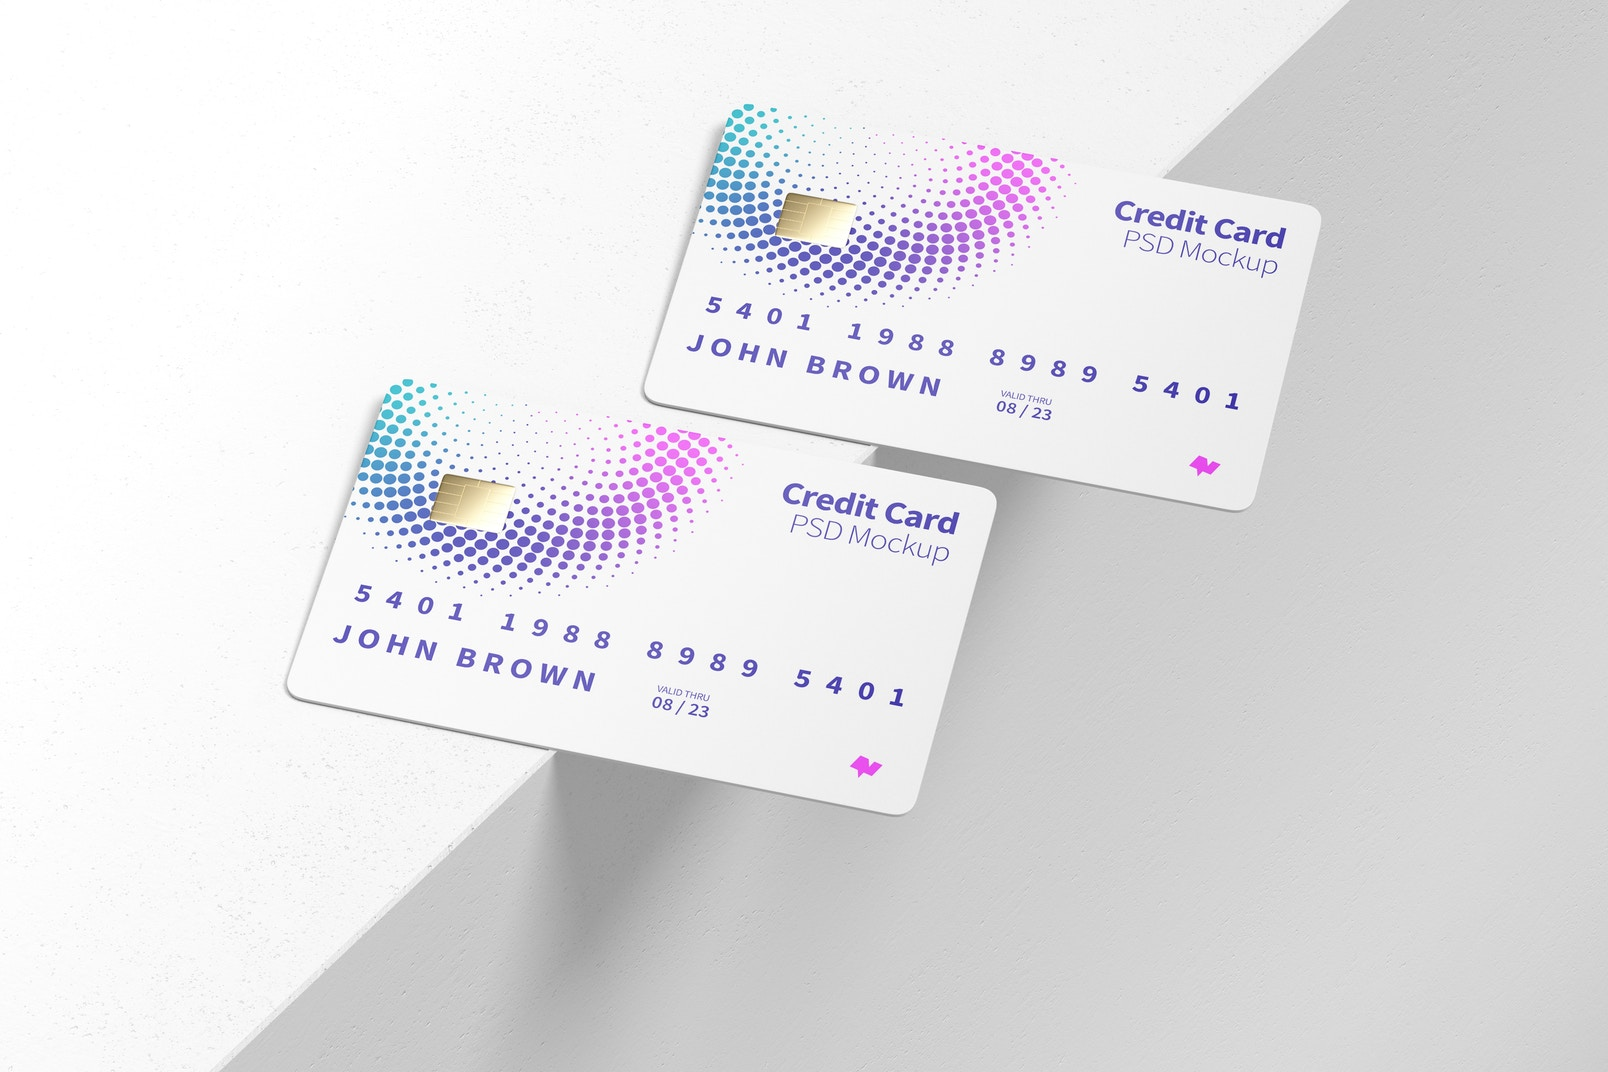 Credit Cards Mockup, Perspective View